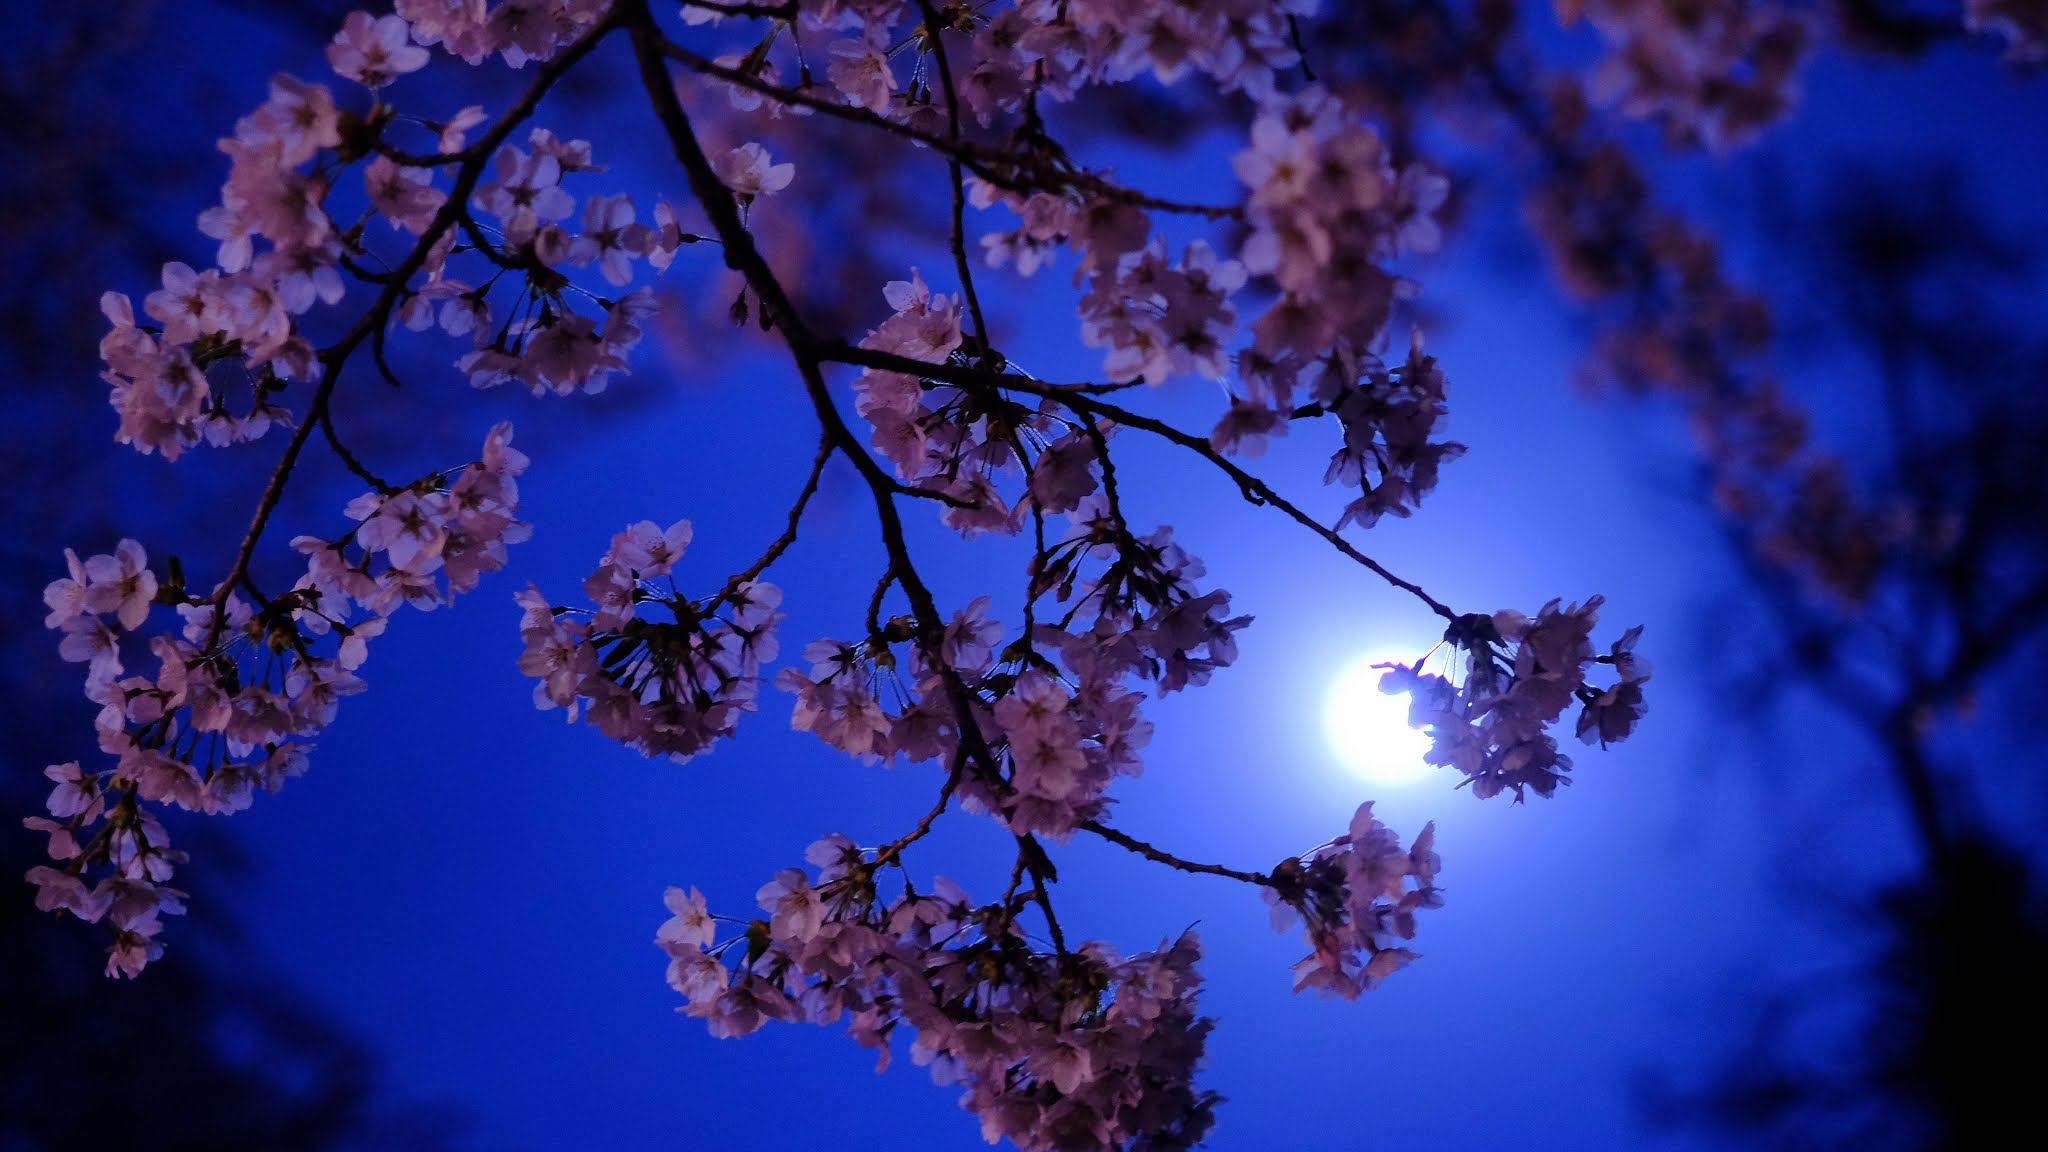 Wallpaper Sakura Tree Moon Night